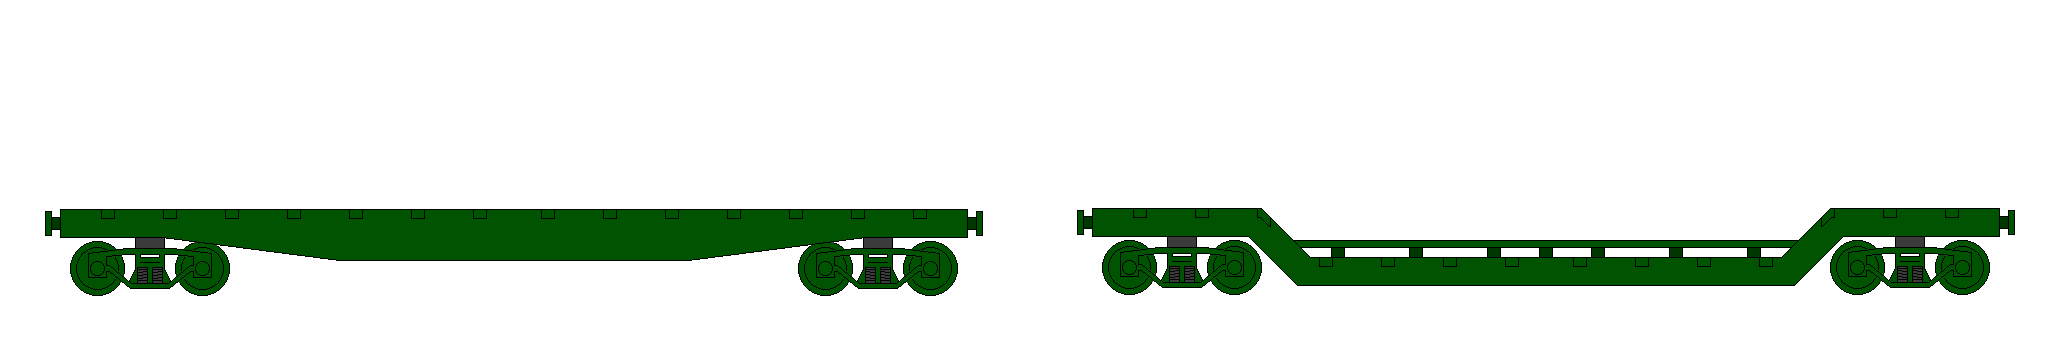 Flatbed Train Cars 4 by KoKoaLover1 on DeviantArt.